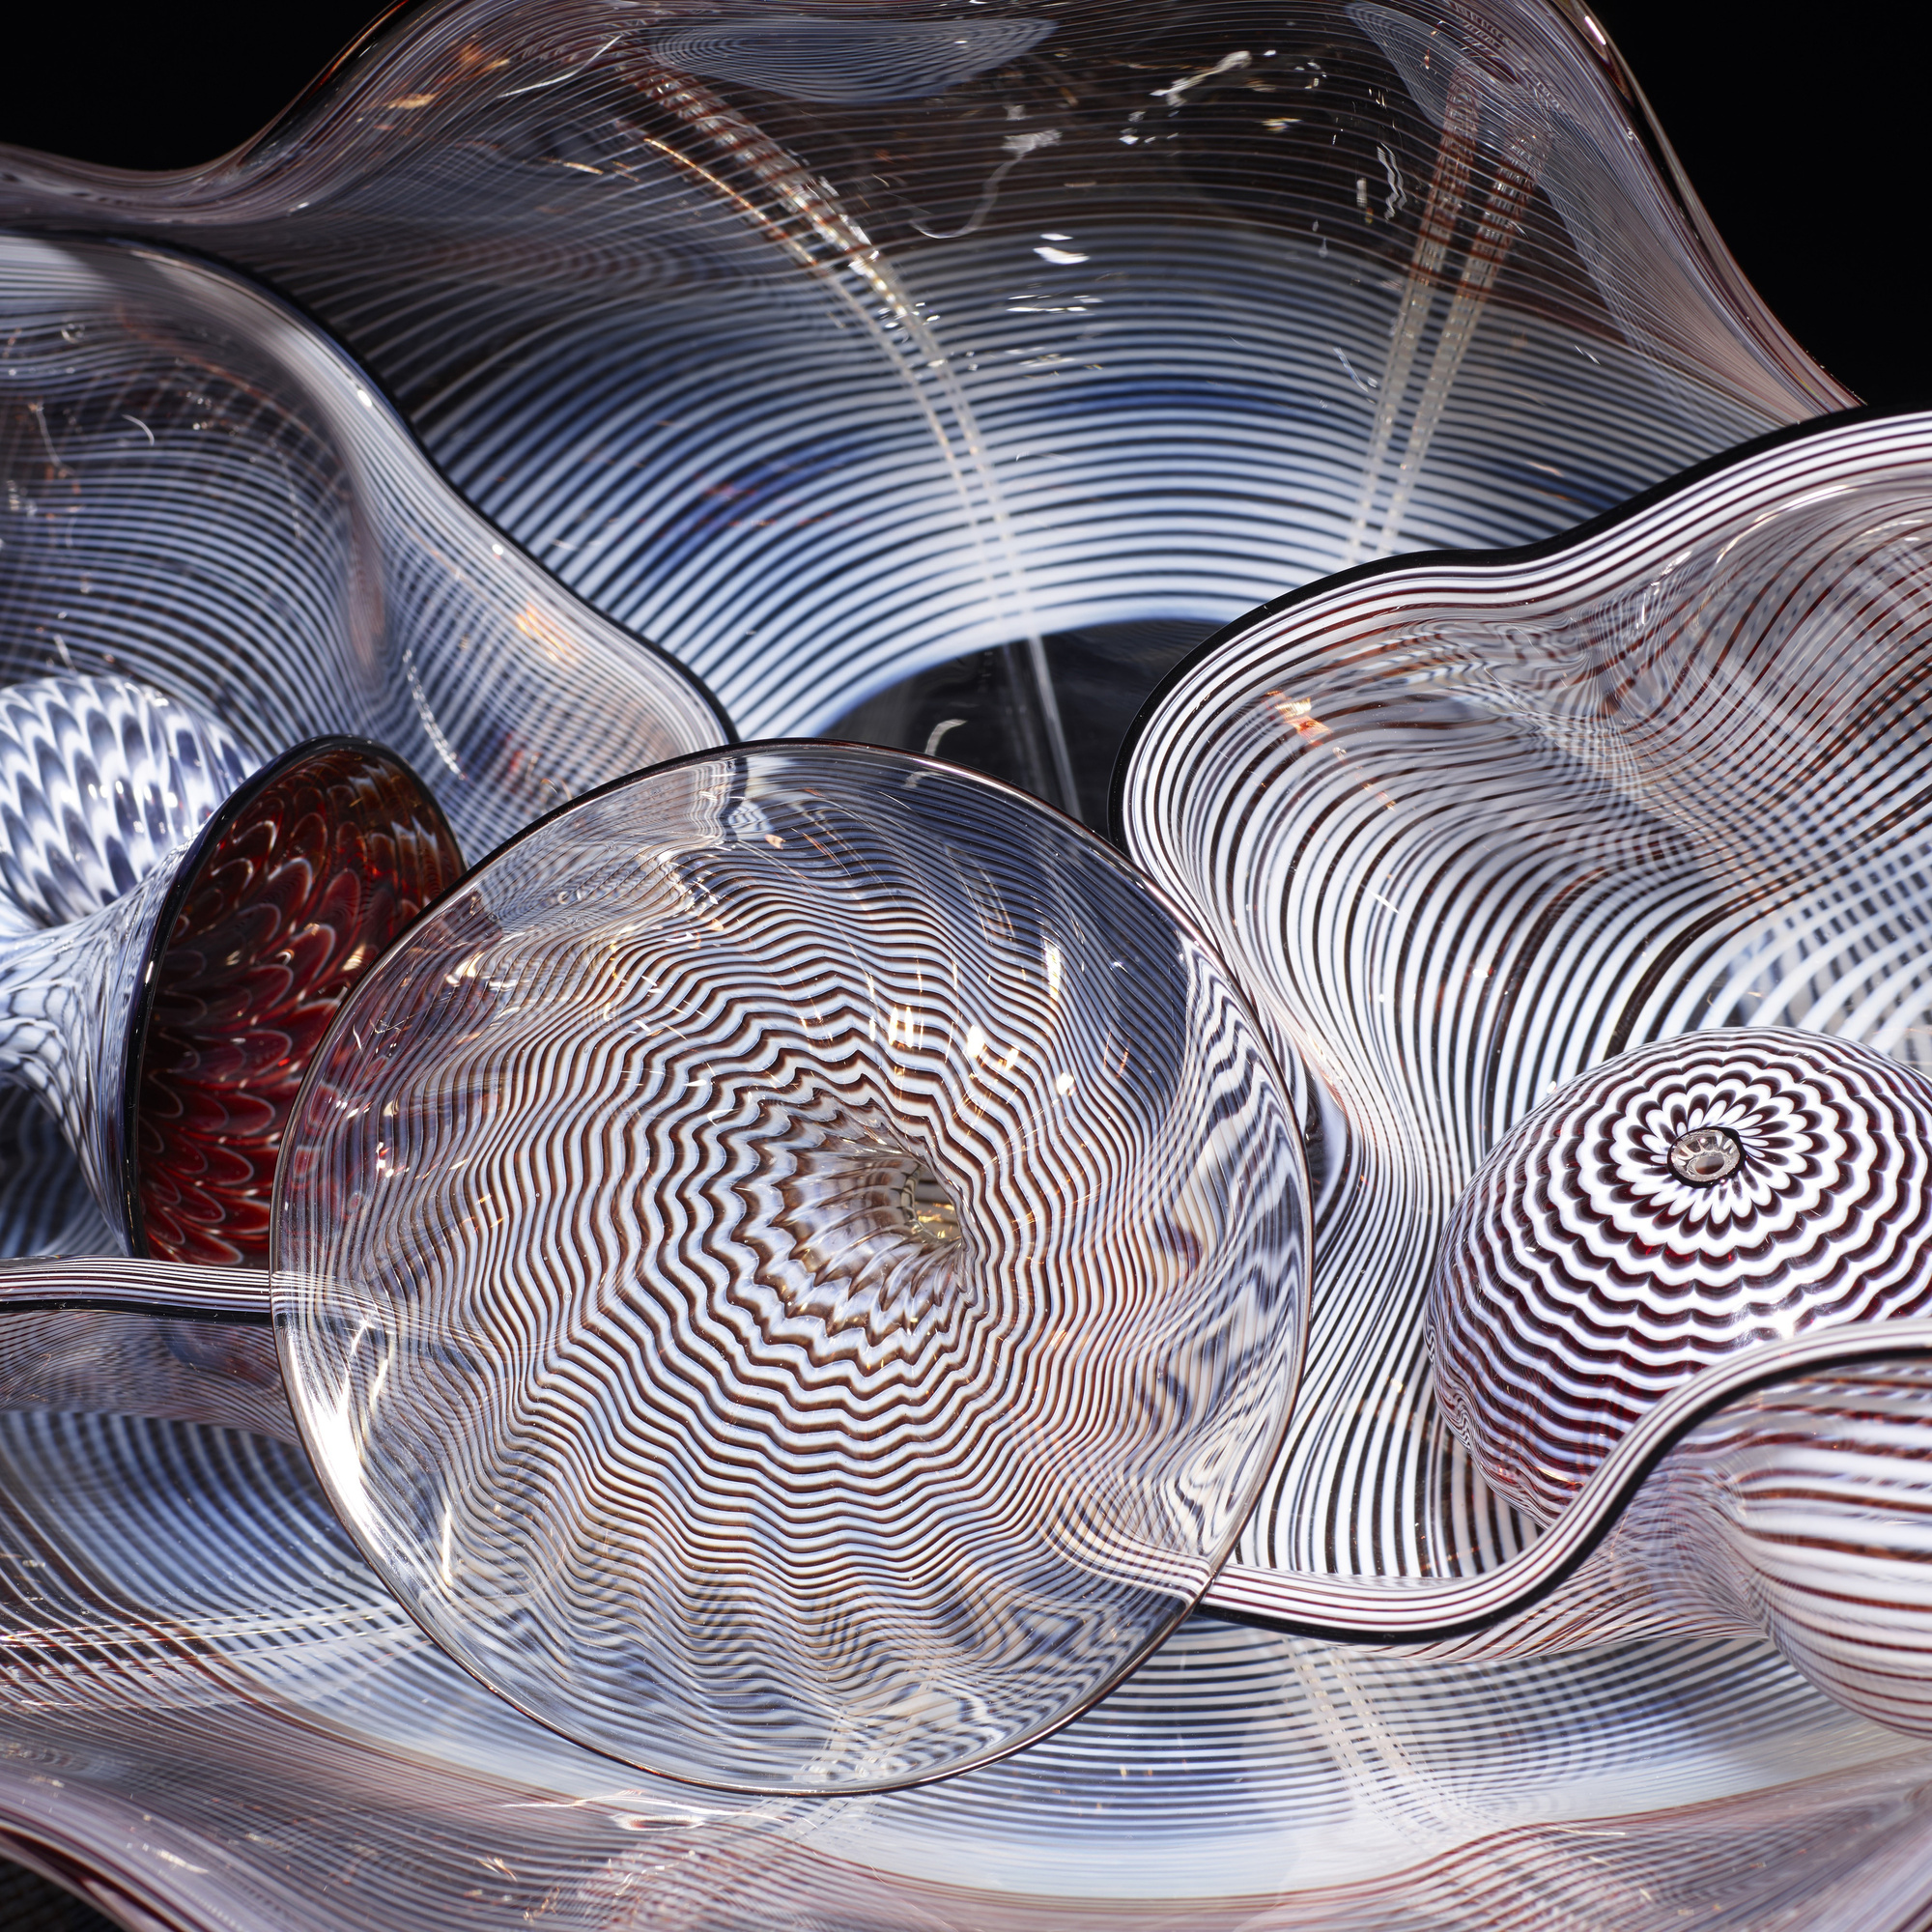 107: Dale Chihuly / Ox Blood Persian Set with Black Lip Wraps (2 of 3)